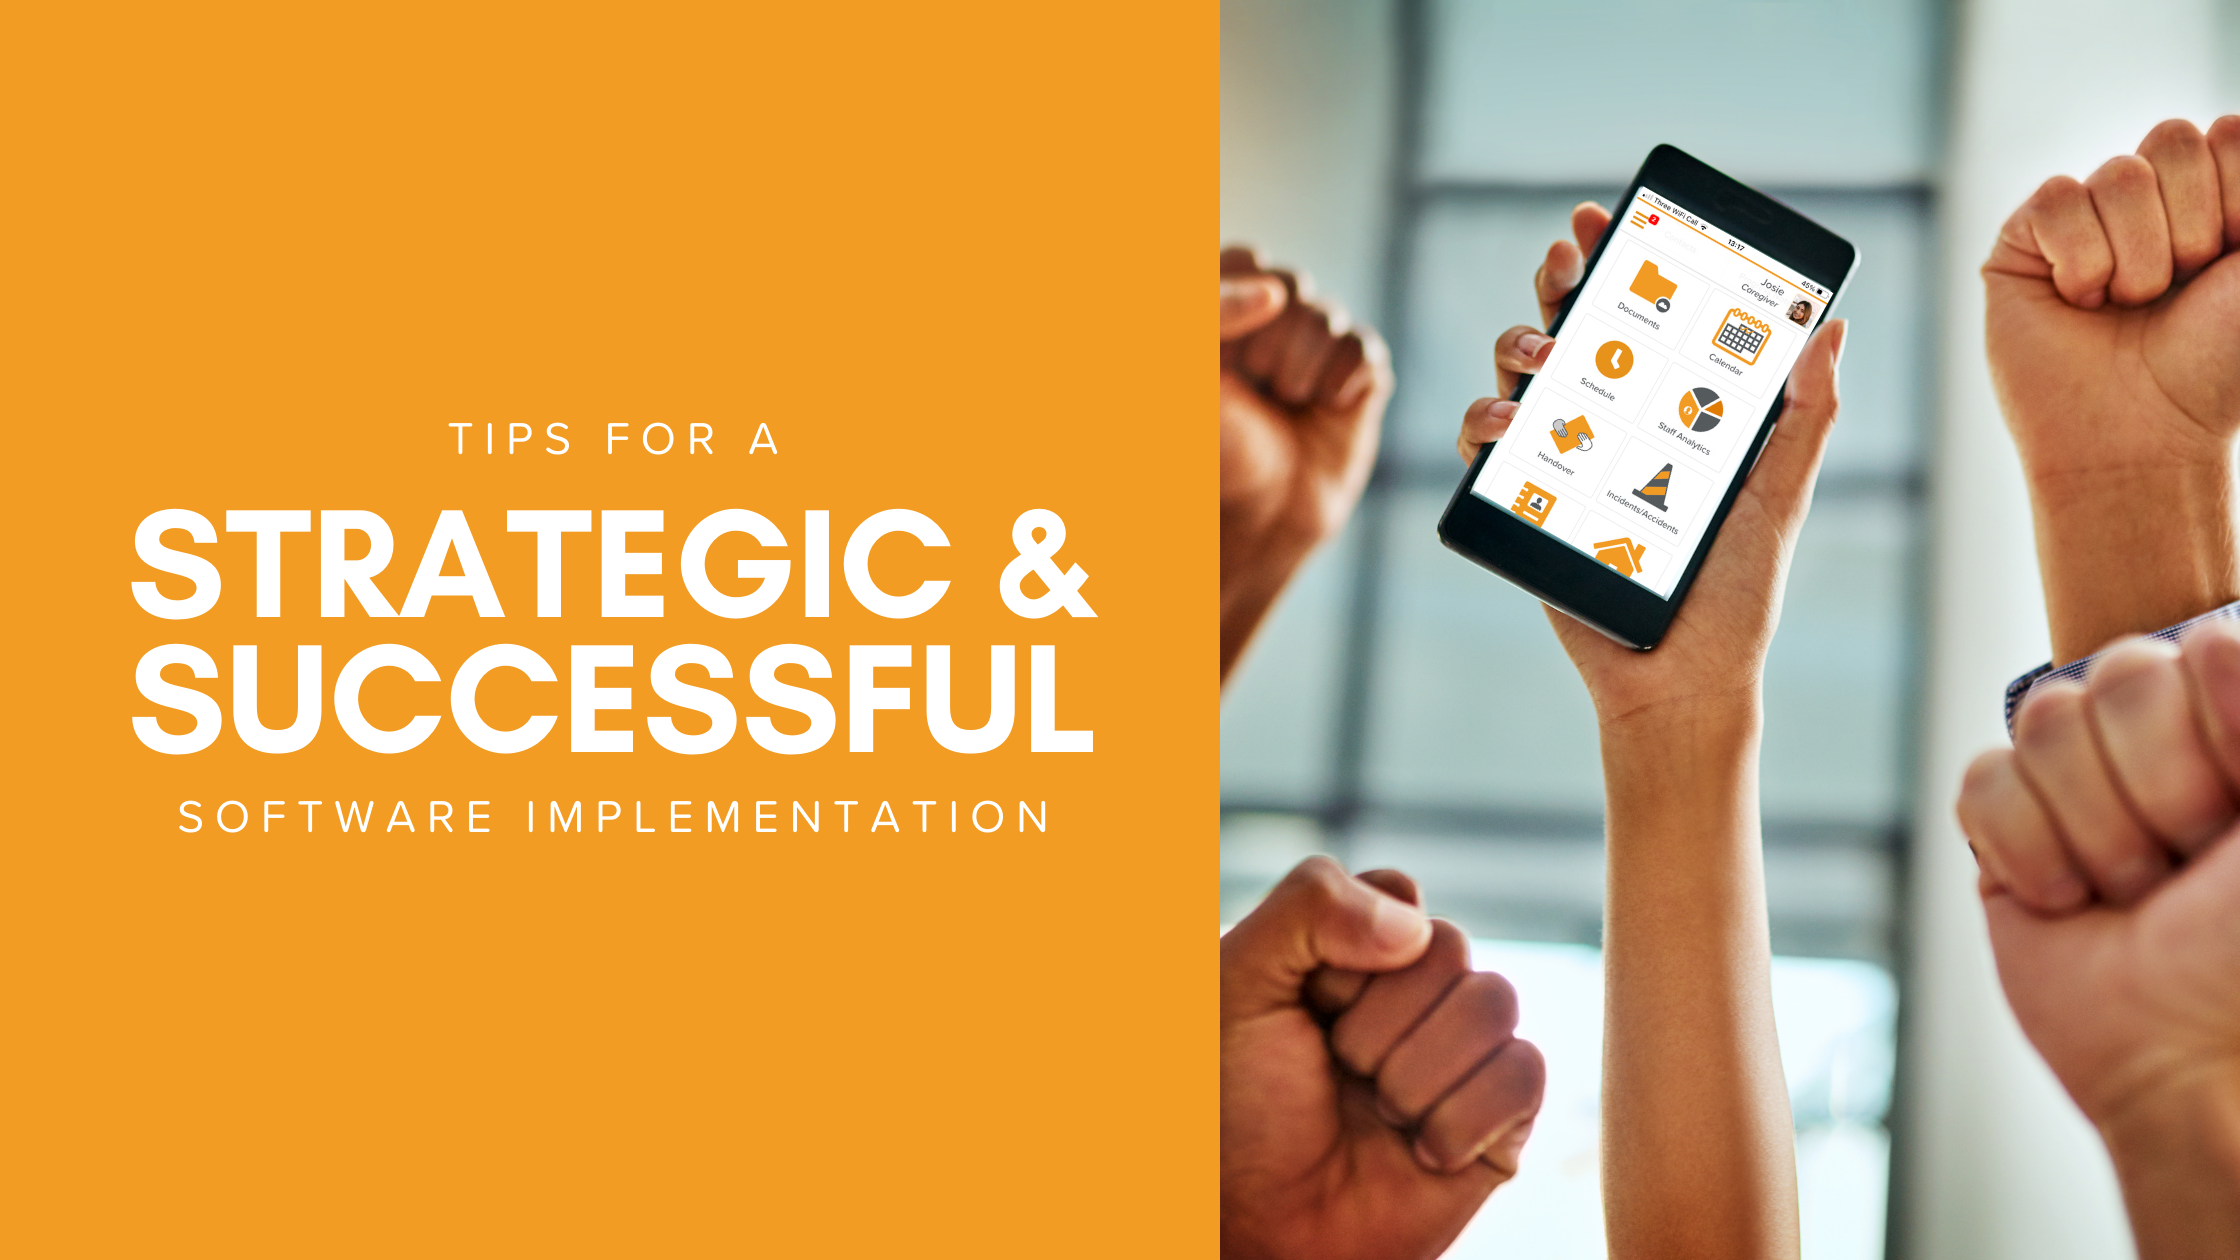 Tips for a Strategic & Successful Software Implementation